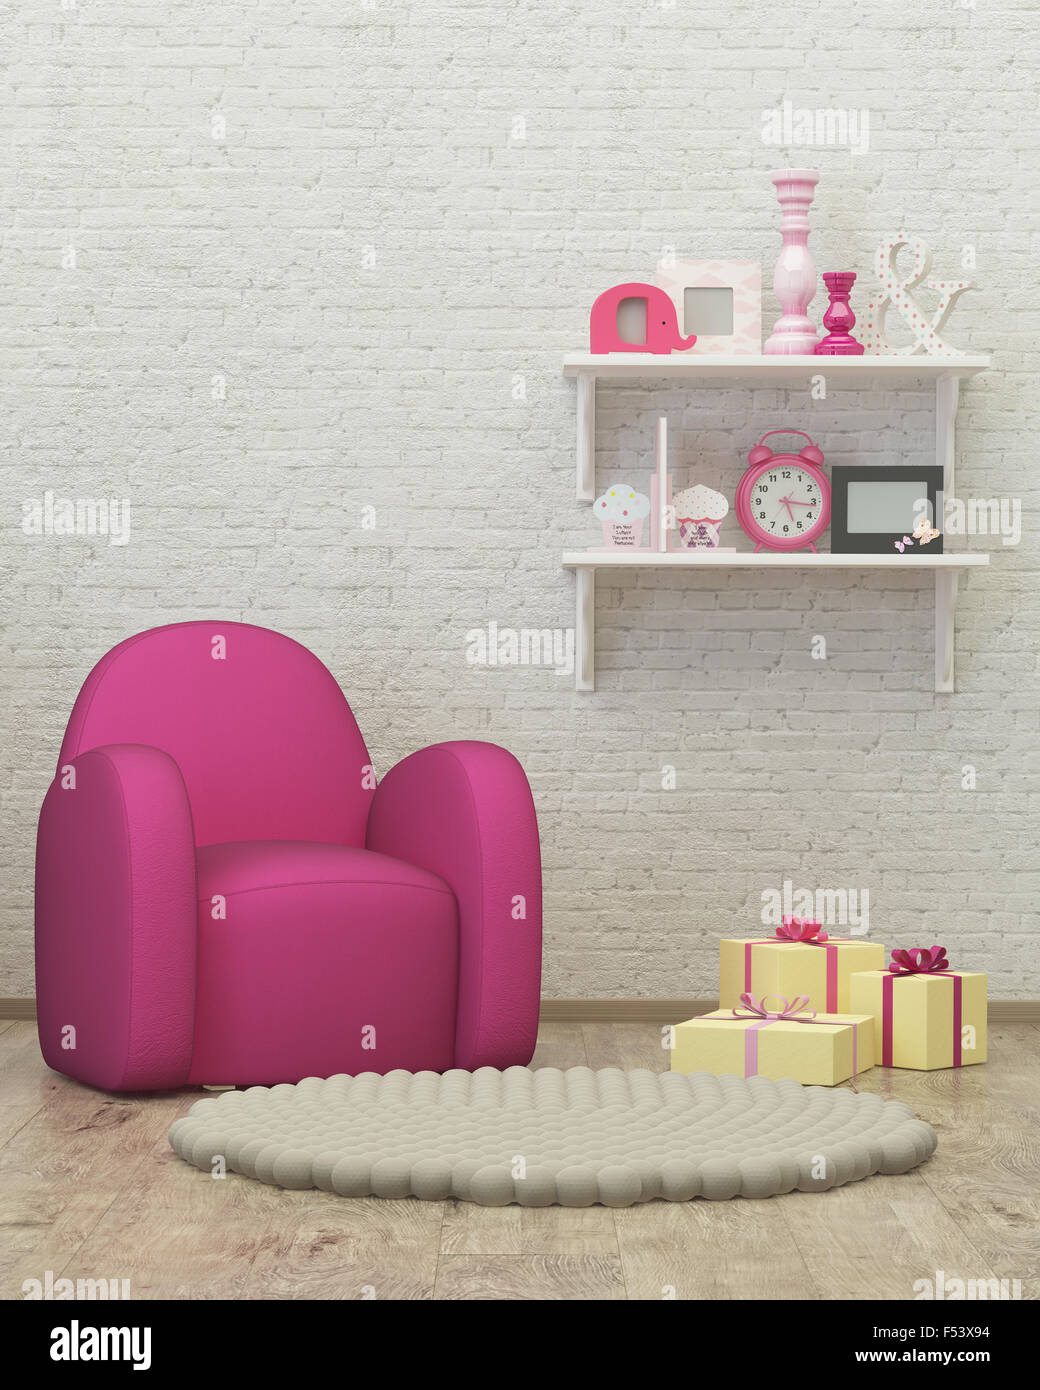 kids room interior 3d render image, pouf,presents - Stock Image